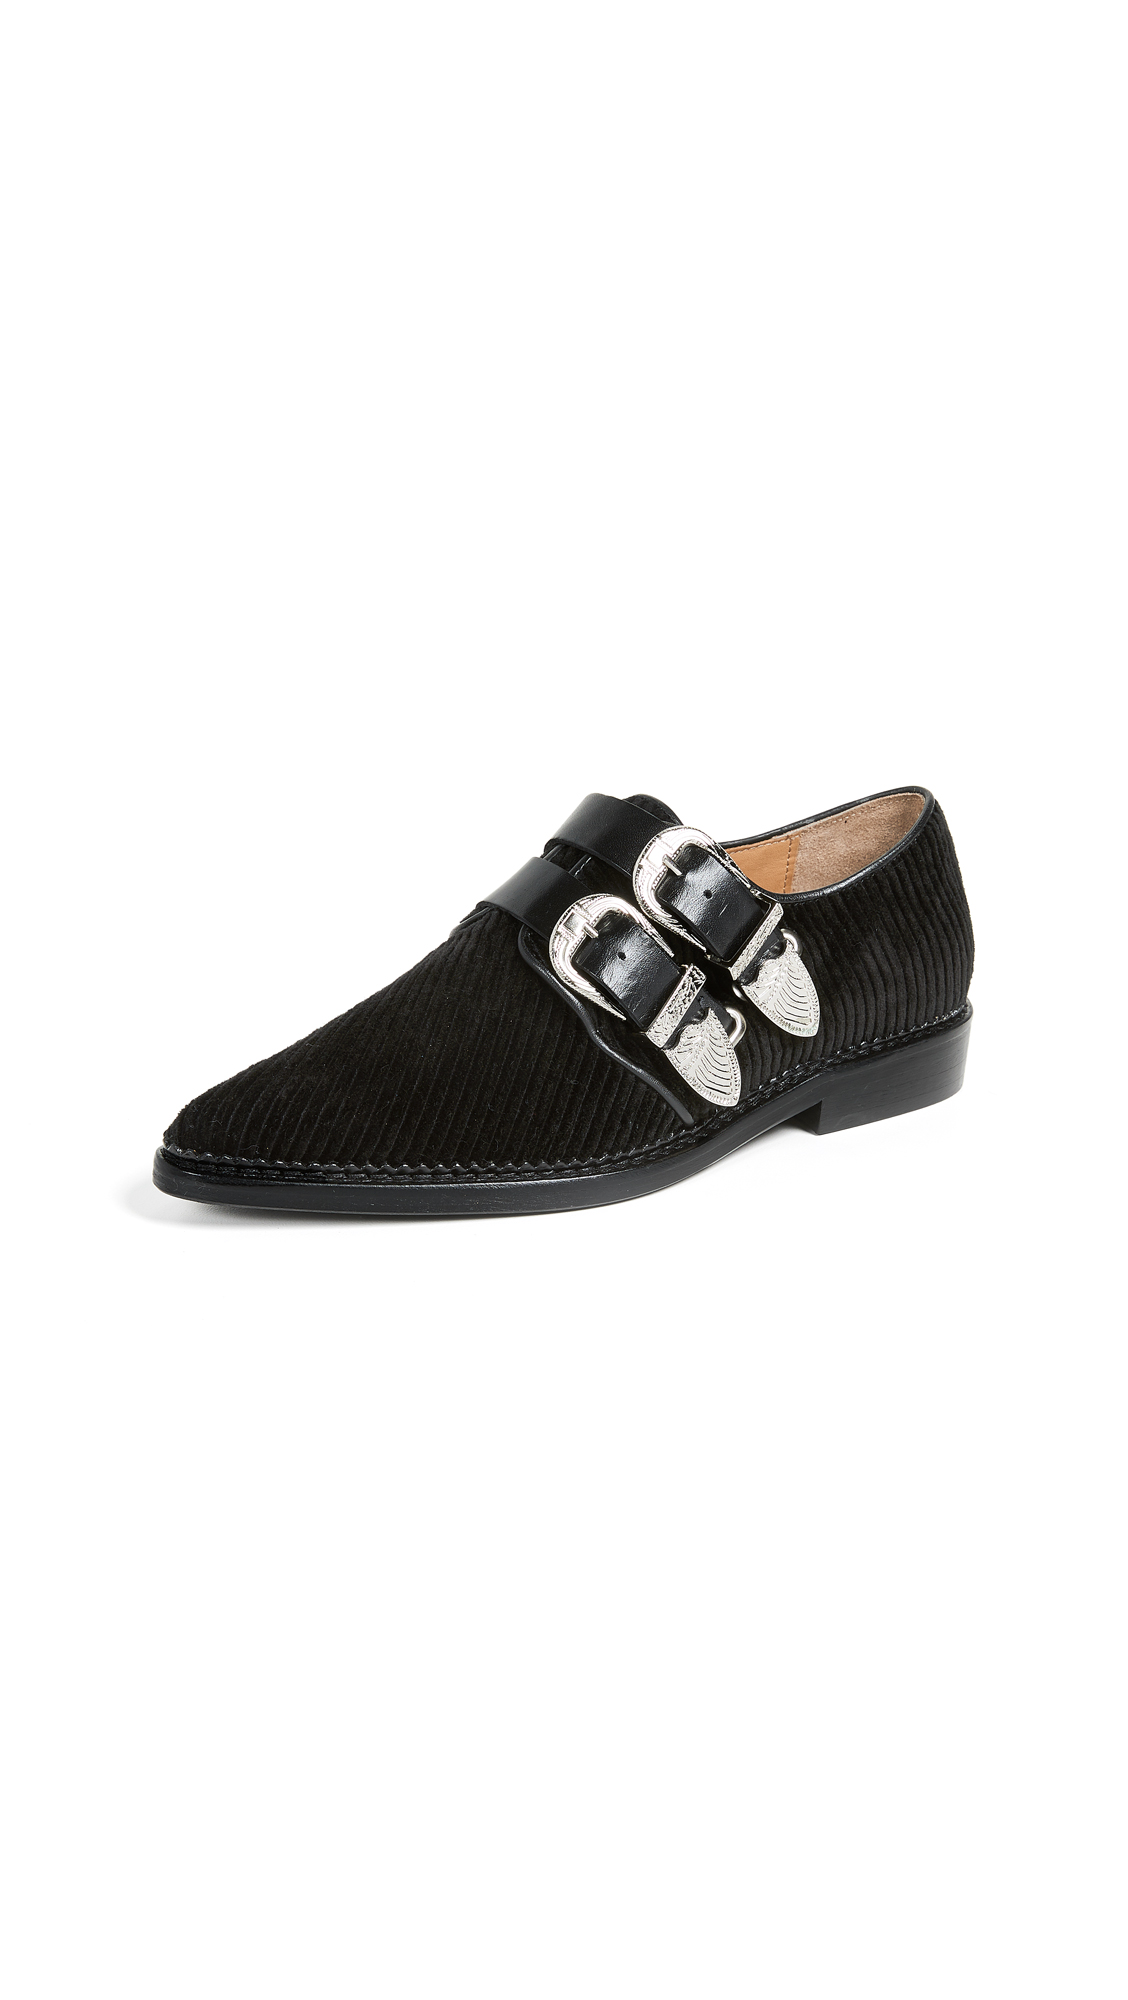 Toga Pulla Buckled Oxford Flats - Black